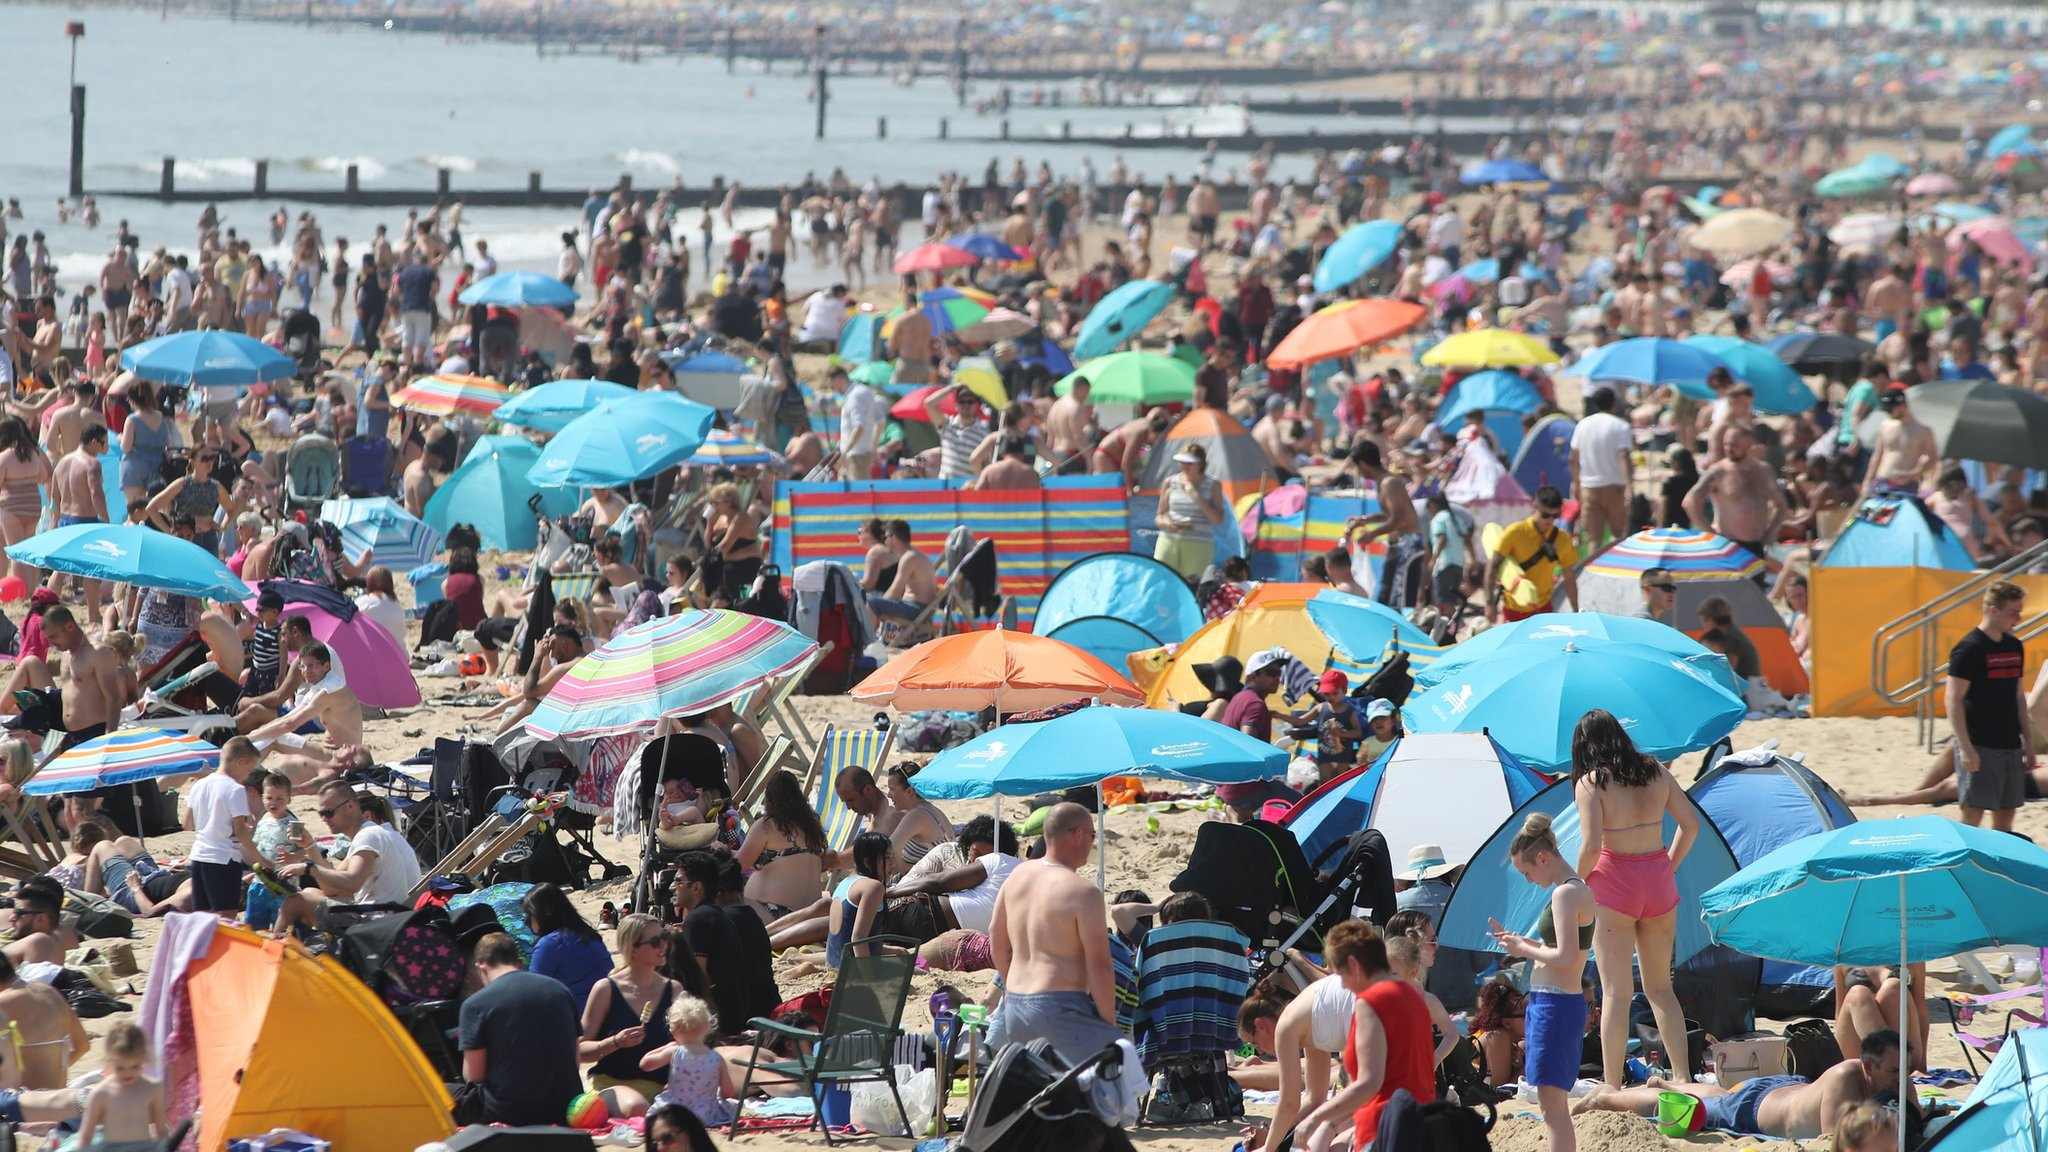 UK weather: Hottest day of the year, says Met Office